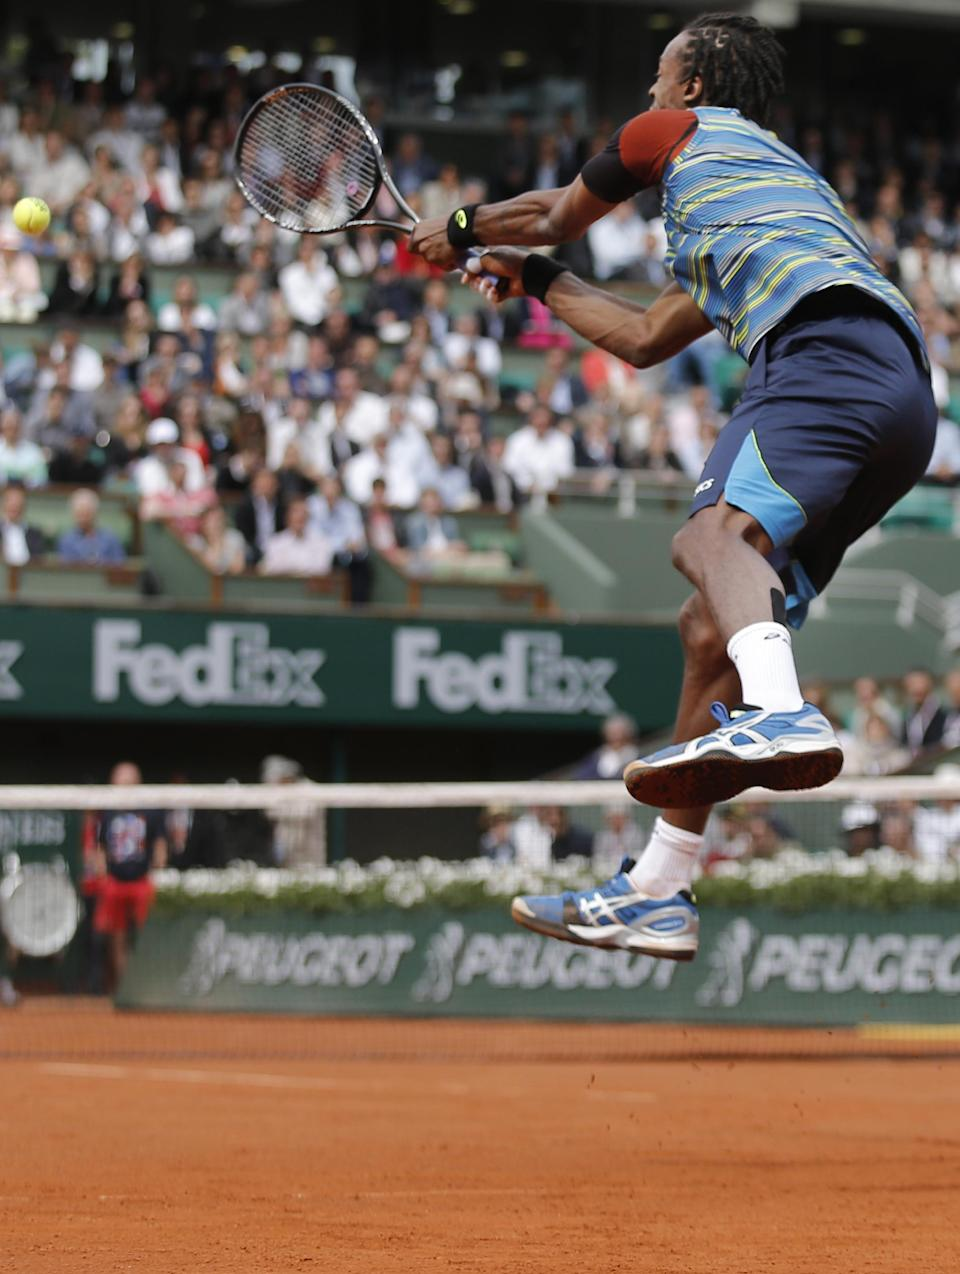 Gael Monfils of France jumps to return against Tomas Berdych of the Czech Republic in their first round match of the French Open tennis tournament, at Roland Garros stadium in Paris, Monday, May 27, 2013. (AP Photo/Christophe Ena)